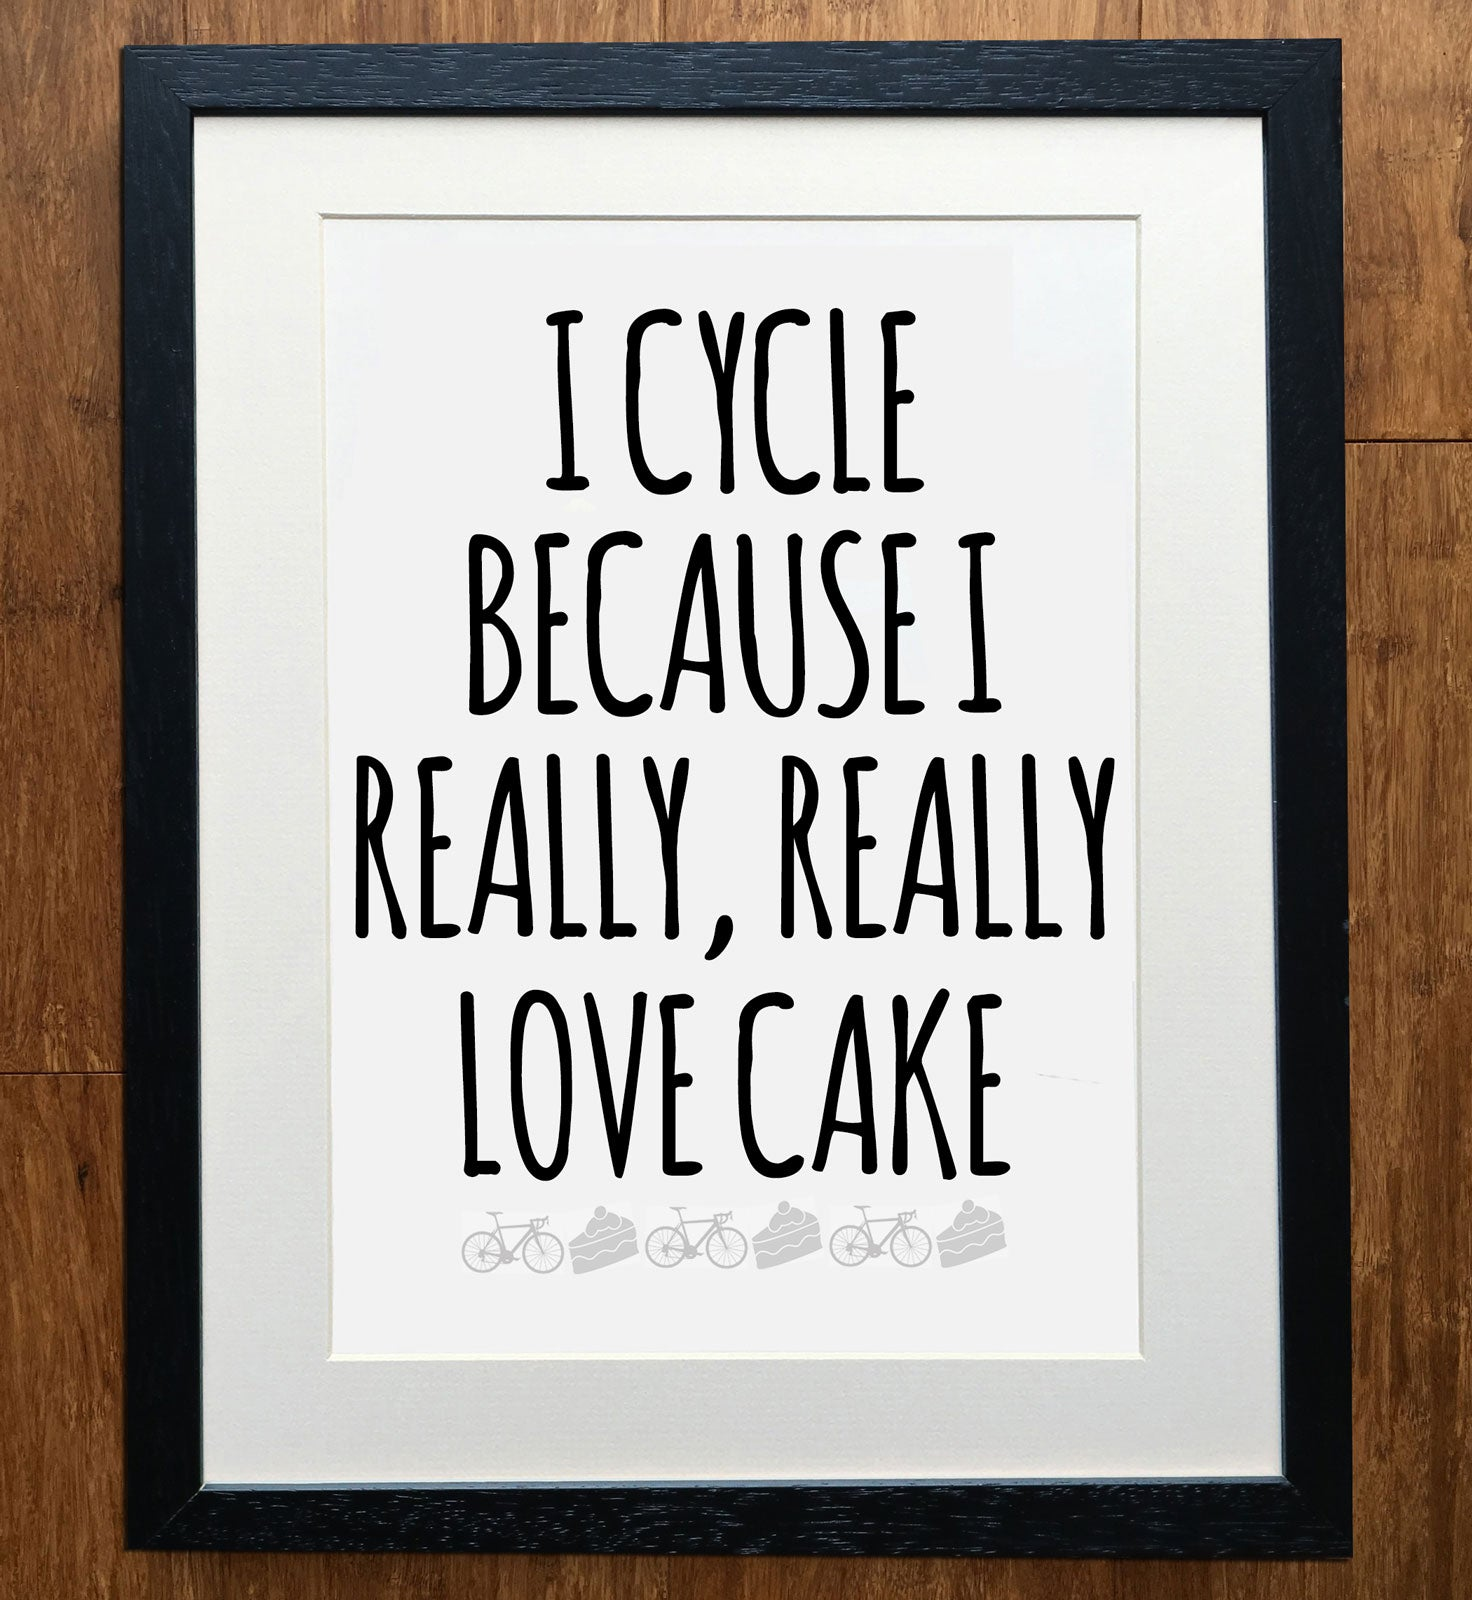 I Cycle Because I Really Really Love Cake Cycling Print Printed